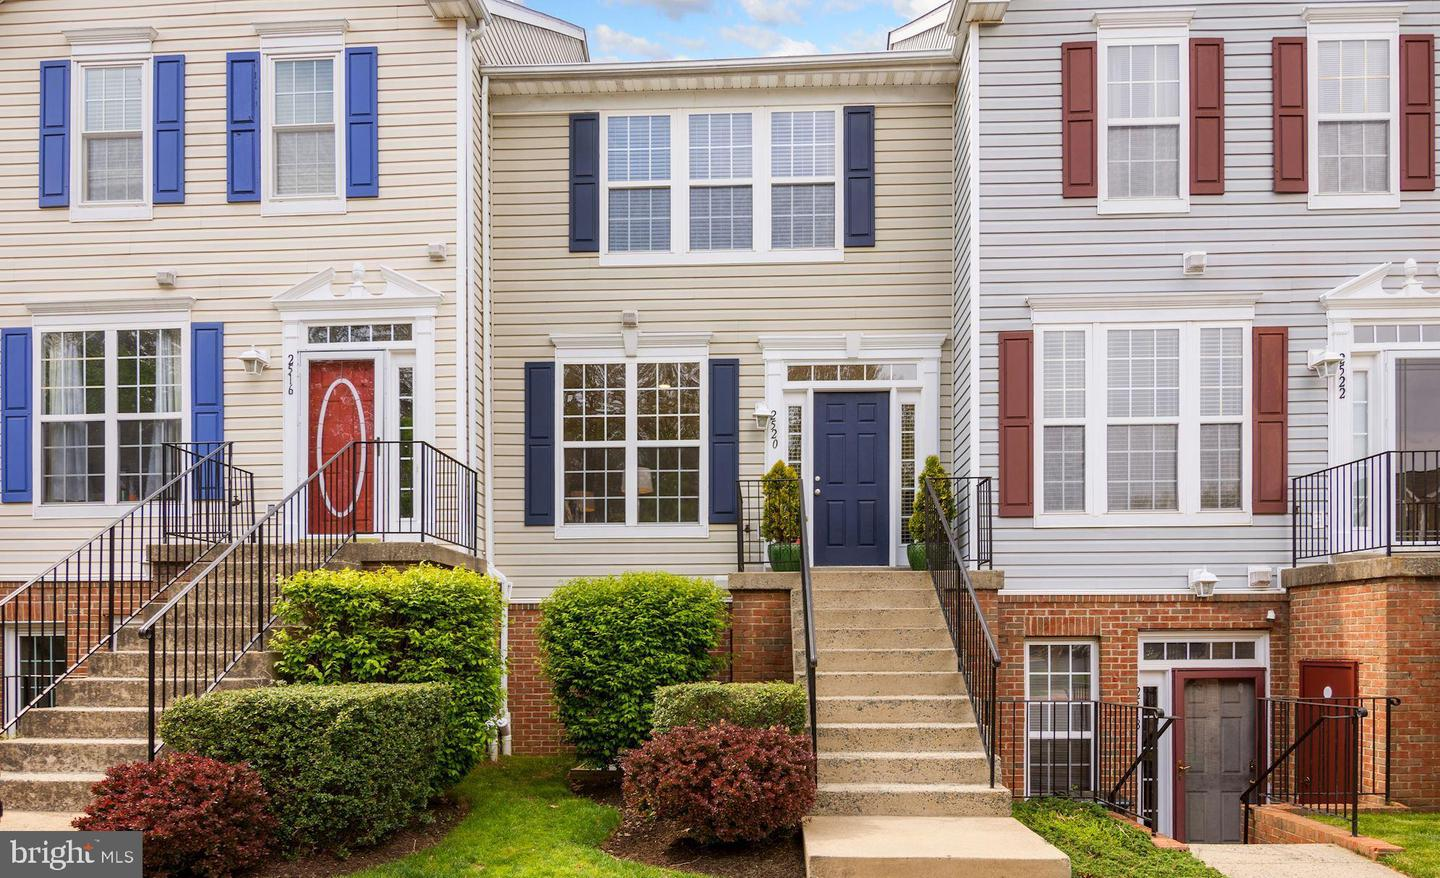 2520 WILLOW LEAF CT, ODENTON, Maryland 21113, 3 Bedrooms Bedrooms, ,3 BathroomsBathrooms,Common Interest,For Sale,2520 WILLOW LEAF CT,MDAA466200